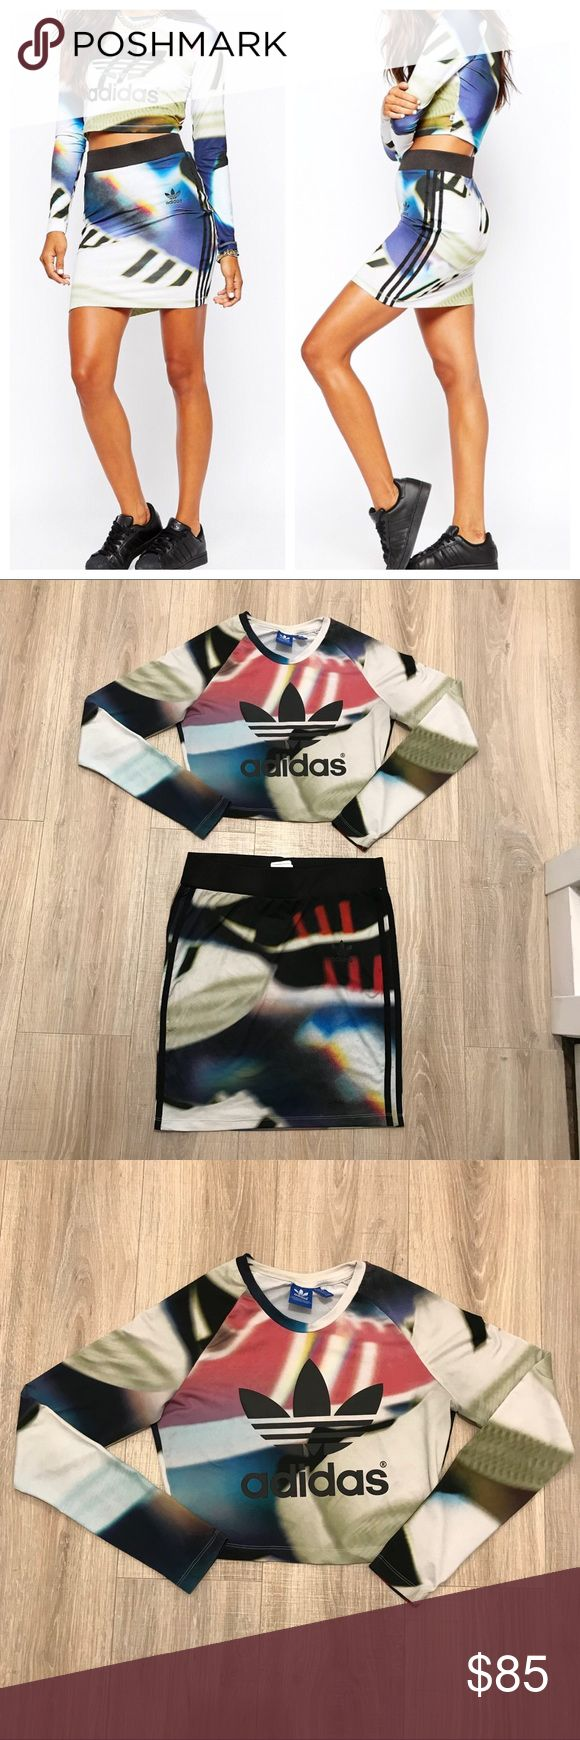 ADIDAS SHOE CHAOS MINI SKIRT & CROP TOP OUTFIT SET The skirt is a women's size small.  Lots of stretch.  Worn but no flaws.  Hard to find.   The crop top is a women's size small.  Lots of stretch.  Slight cracking on the logo (pictured. Very hard to see) Otherwise, no flaws.   Limited edition and hard to find!! Awesome set.  Wish it would fit me!! adidas Skirts Skirt Sets